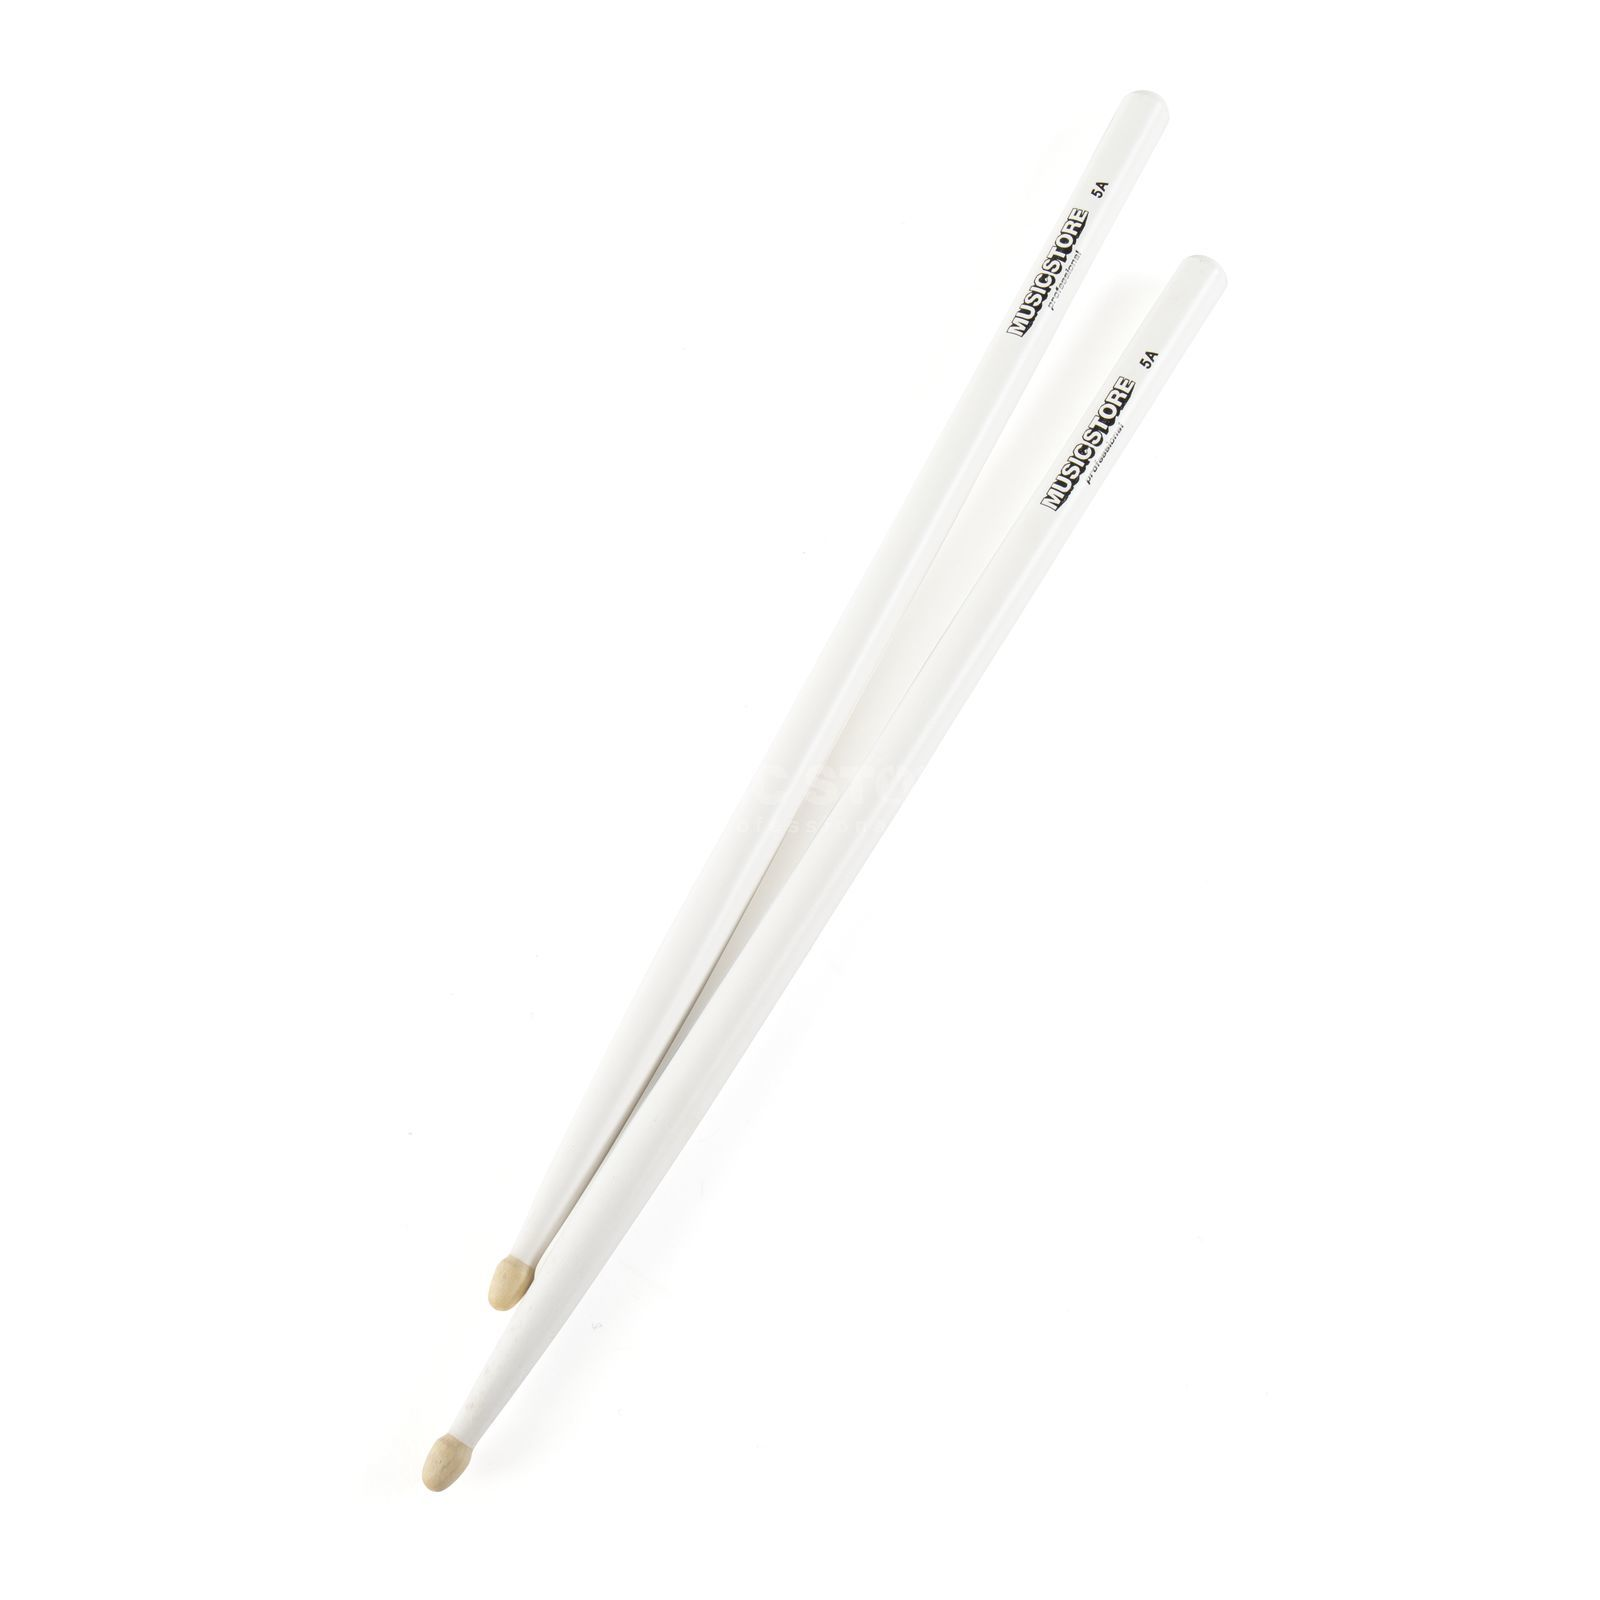 MUSIC STORE 5A Sticks, White, Hornbeam, Wood Tip Produktbild